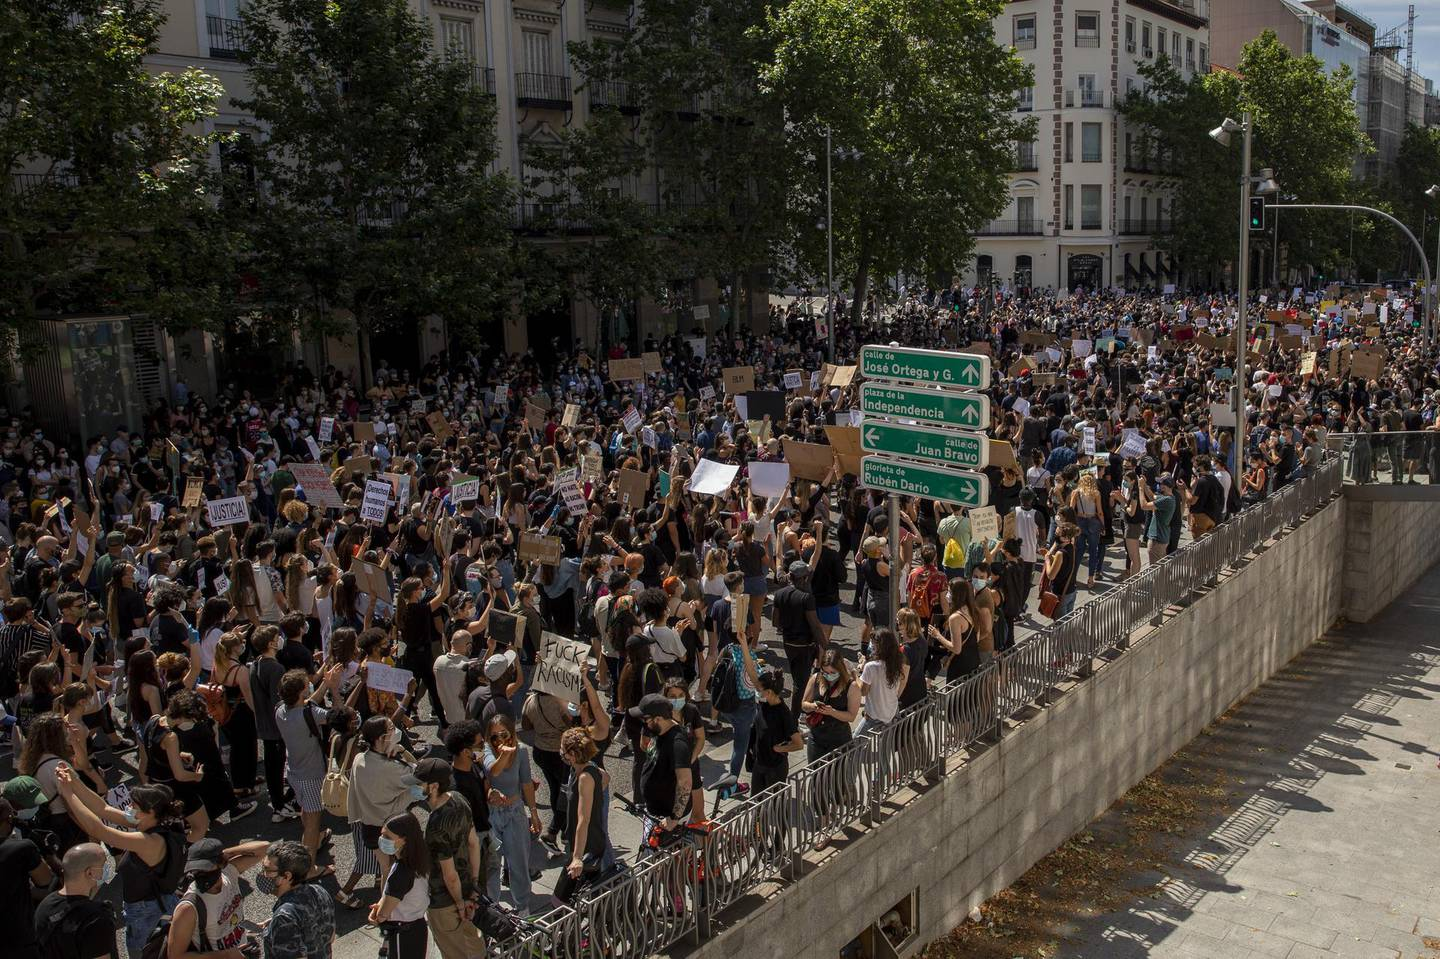 MADRID, SPAIN - JUNE 07: A general view as demonstrators hold placards during a Black Lives Matter protest following the death of George Floyd outside the United States Embassy on June 07, 2020 in Madrid, Spain.The death of an African-American man, George Floyd, while in the custody of Minneapolis police has sparked protests across the United States, as well as demonstrations of solidarity in many countries around the world. (Photo by Pablo Blazquez Dominguez/Getty Images)